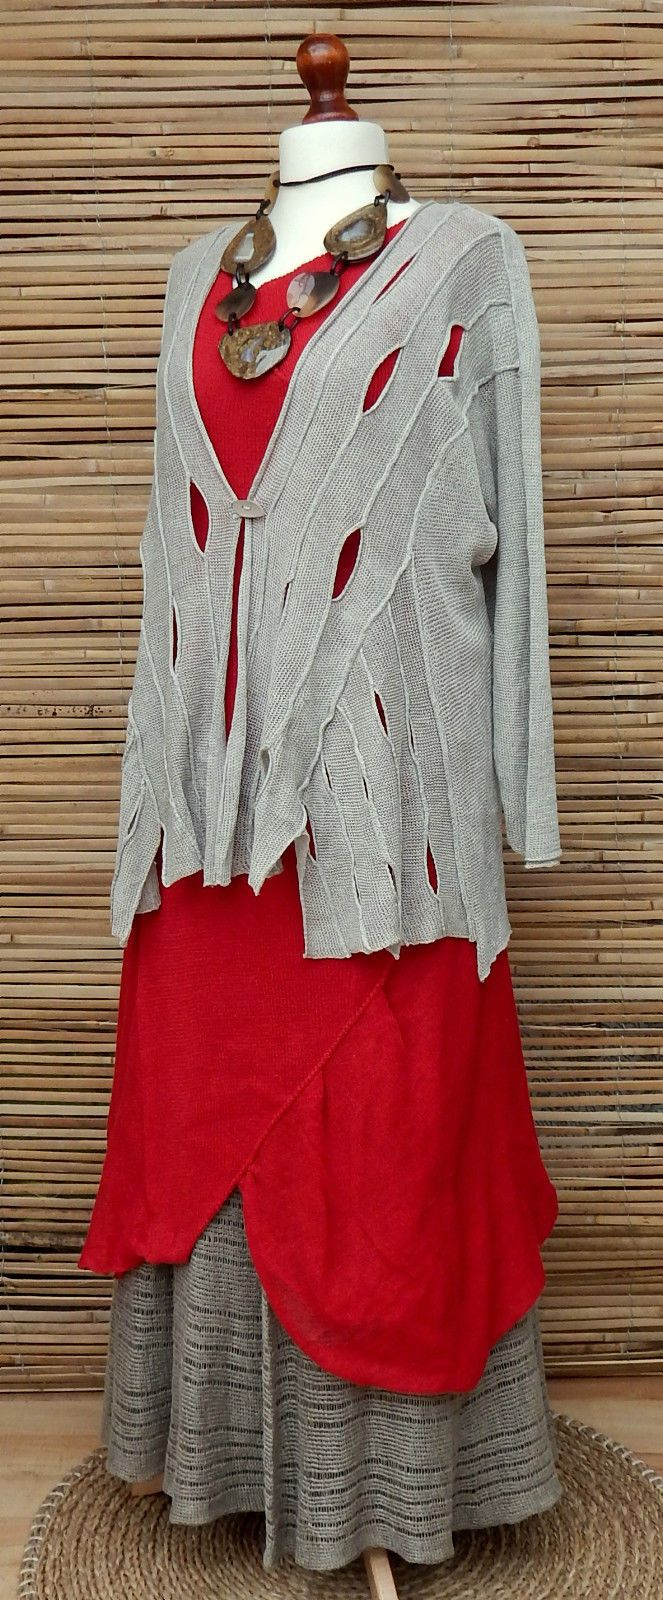 """100% Knitwear Pure Linen. Zuza Bart . Beautiful Cardigan. Stunning Quirky. Length Cardigan: 29"""". Lag enlook Amazing Oversize. Armpit to Armpit: 28"""". Fastening On One Button. 